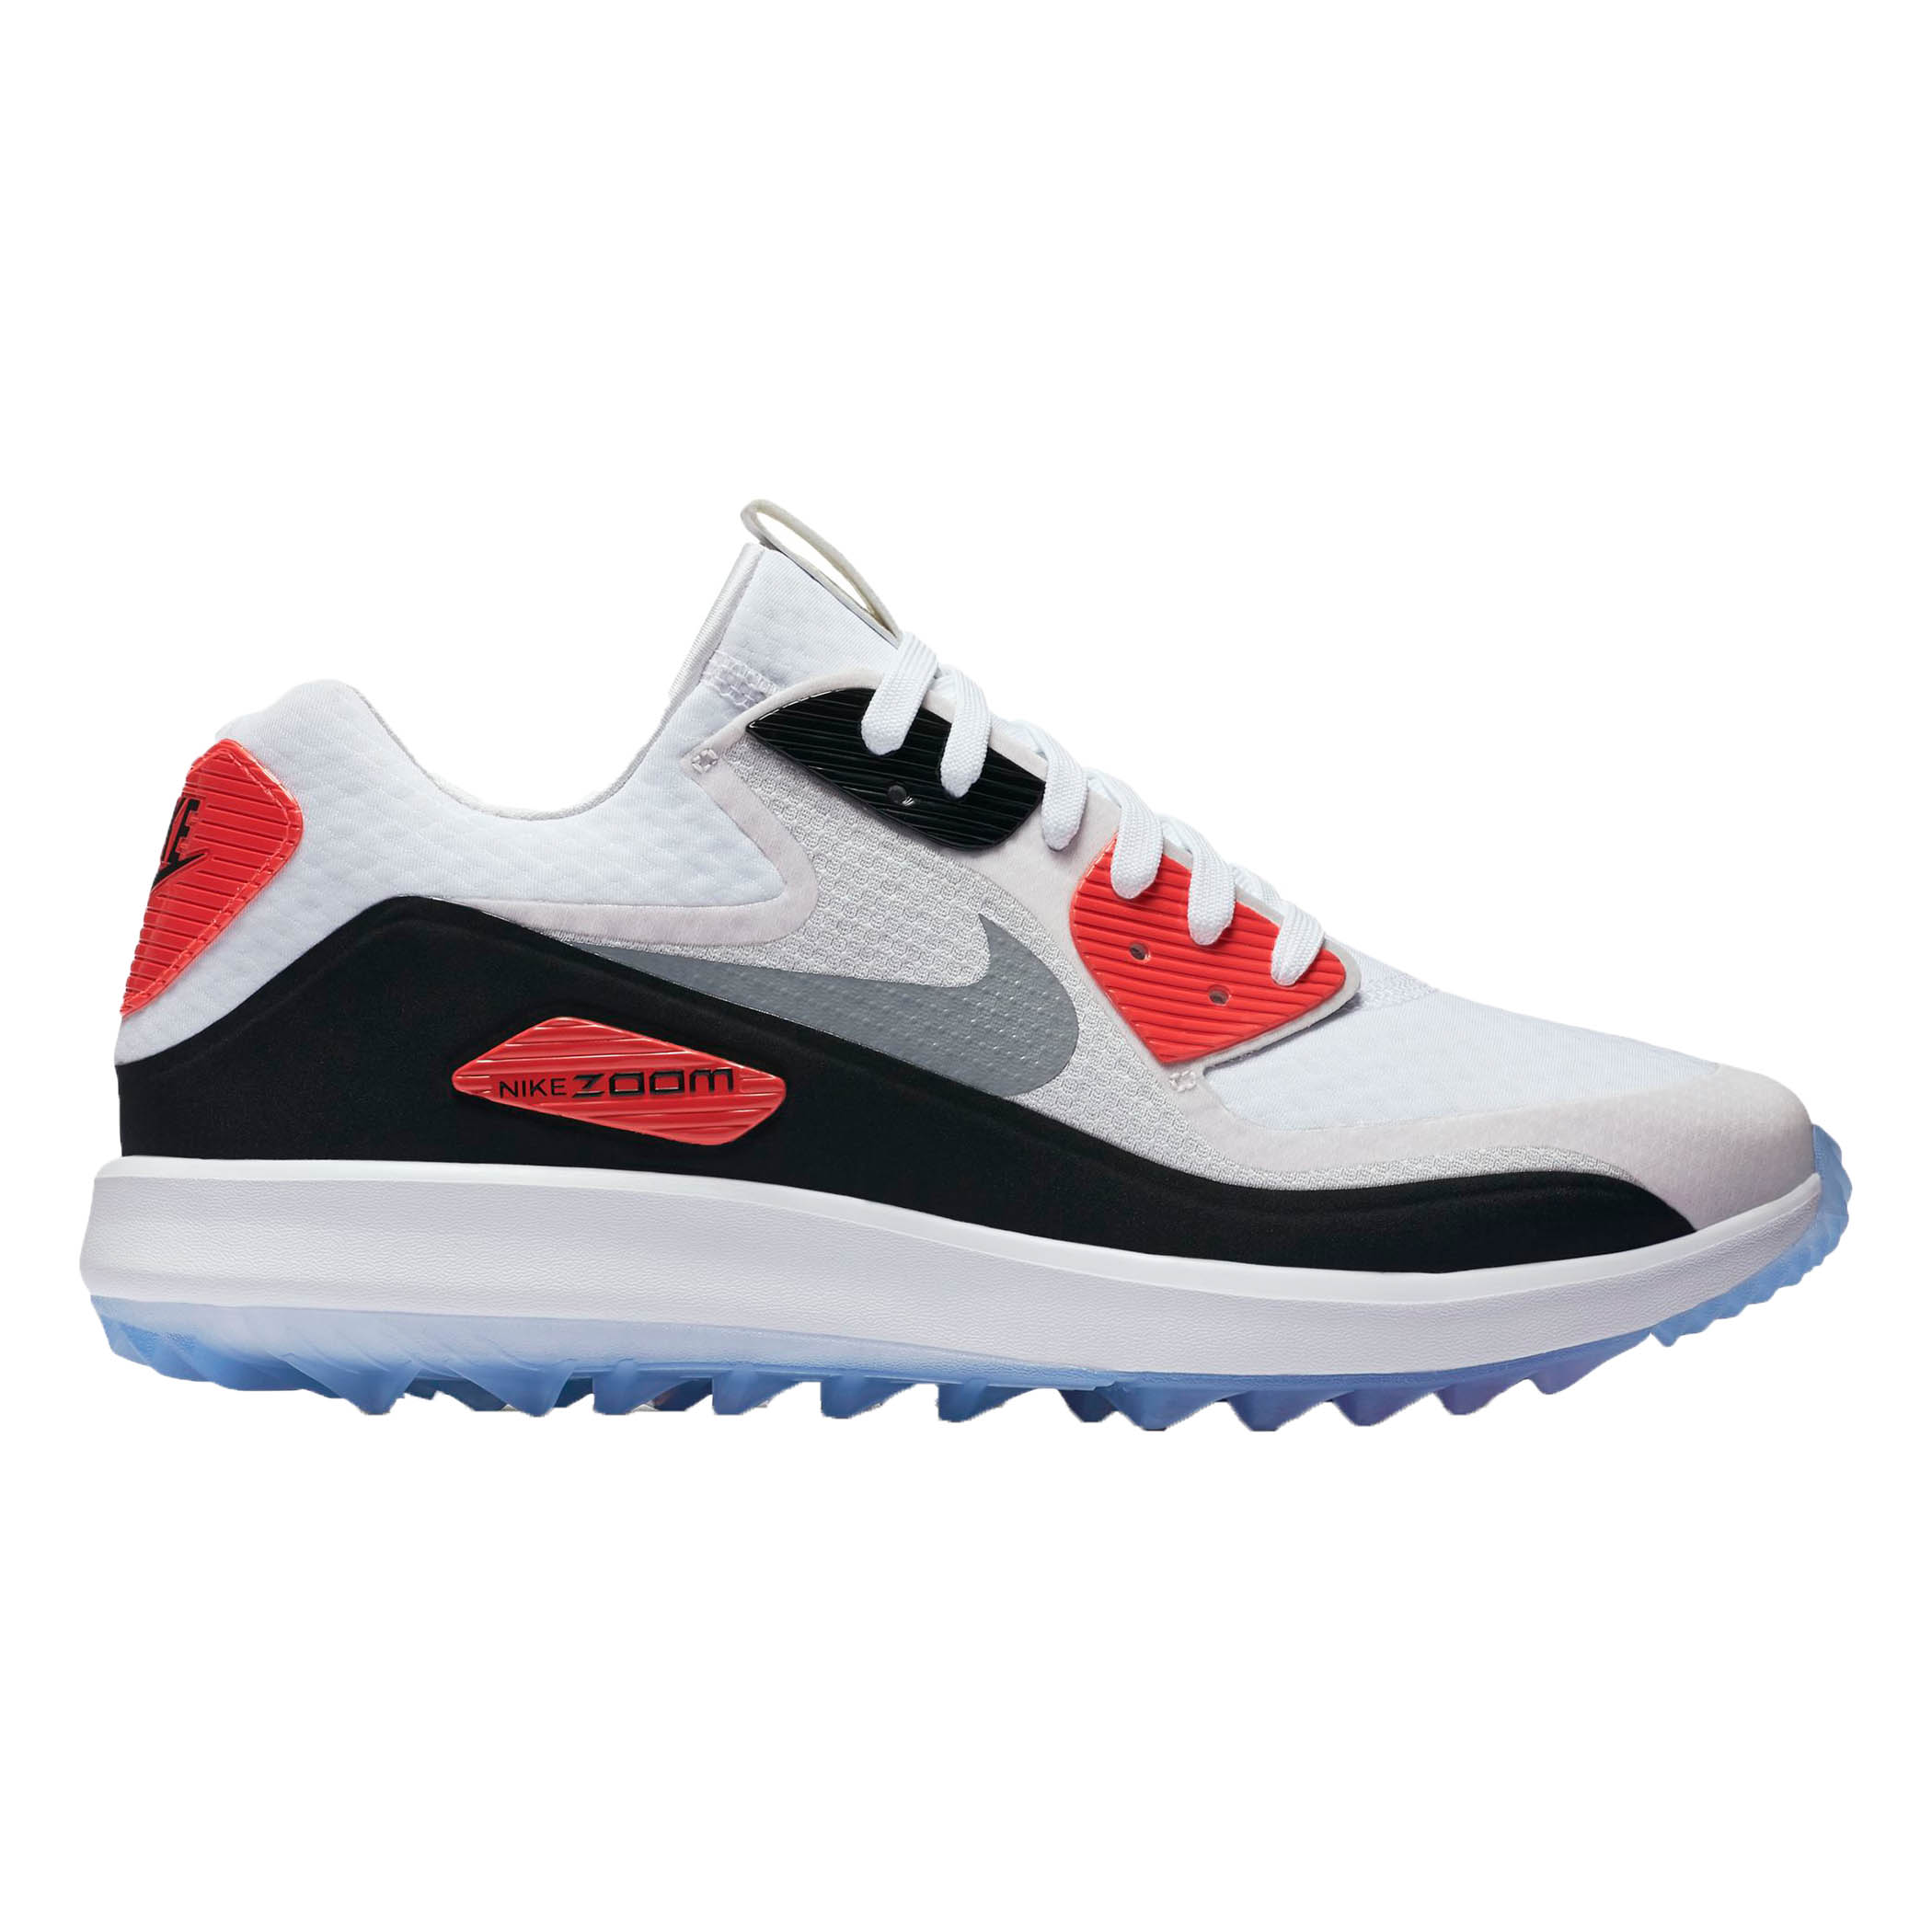 Nike 2017 Air Zoom 90 IT Golf Shoes (White/Grey)